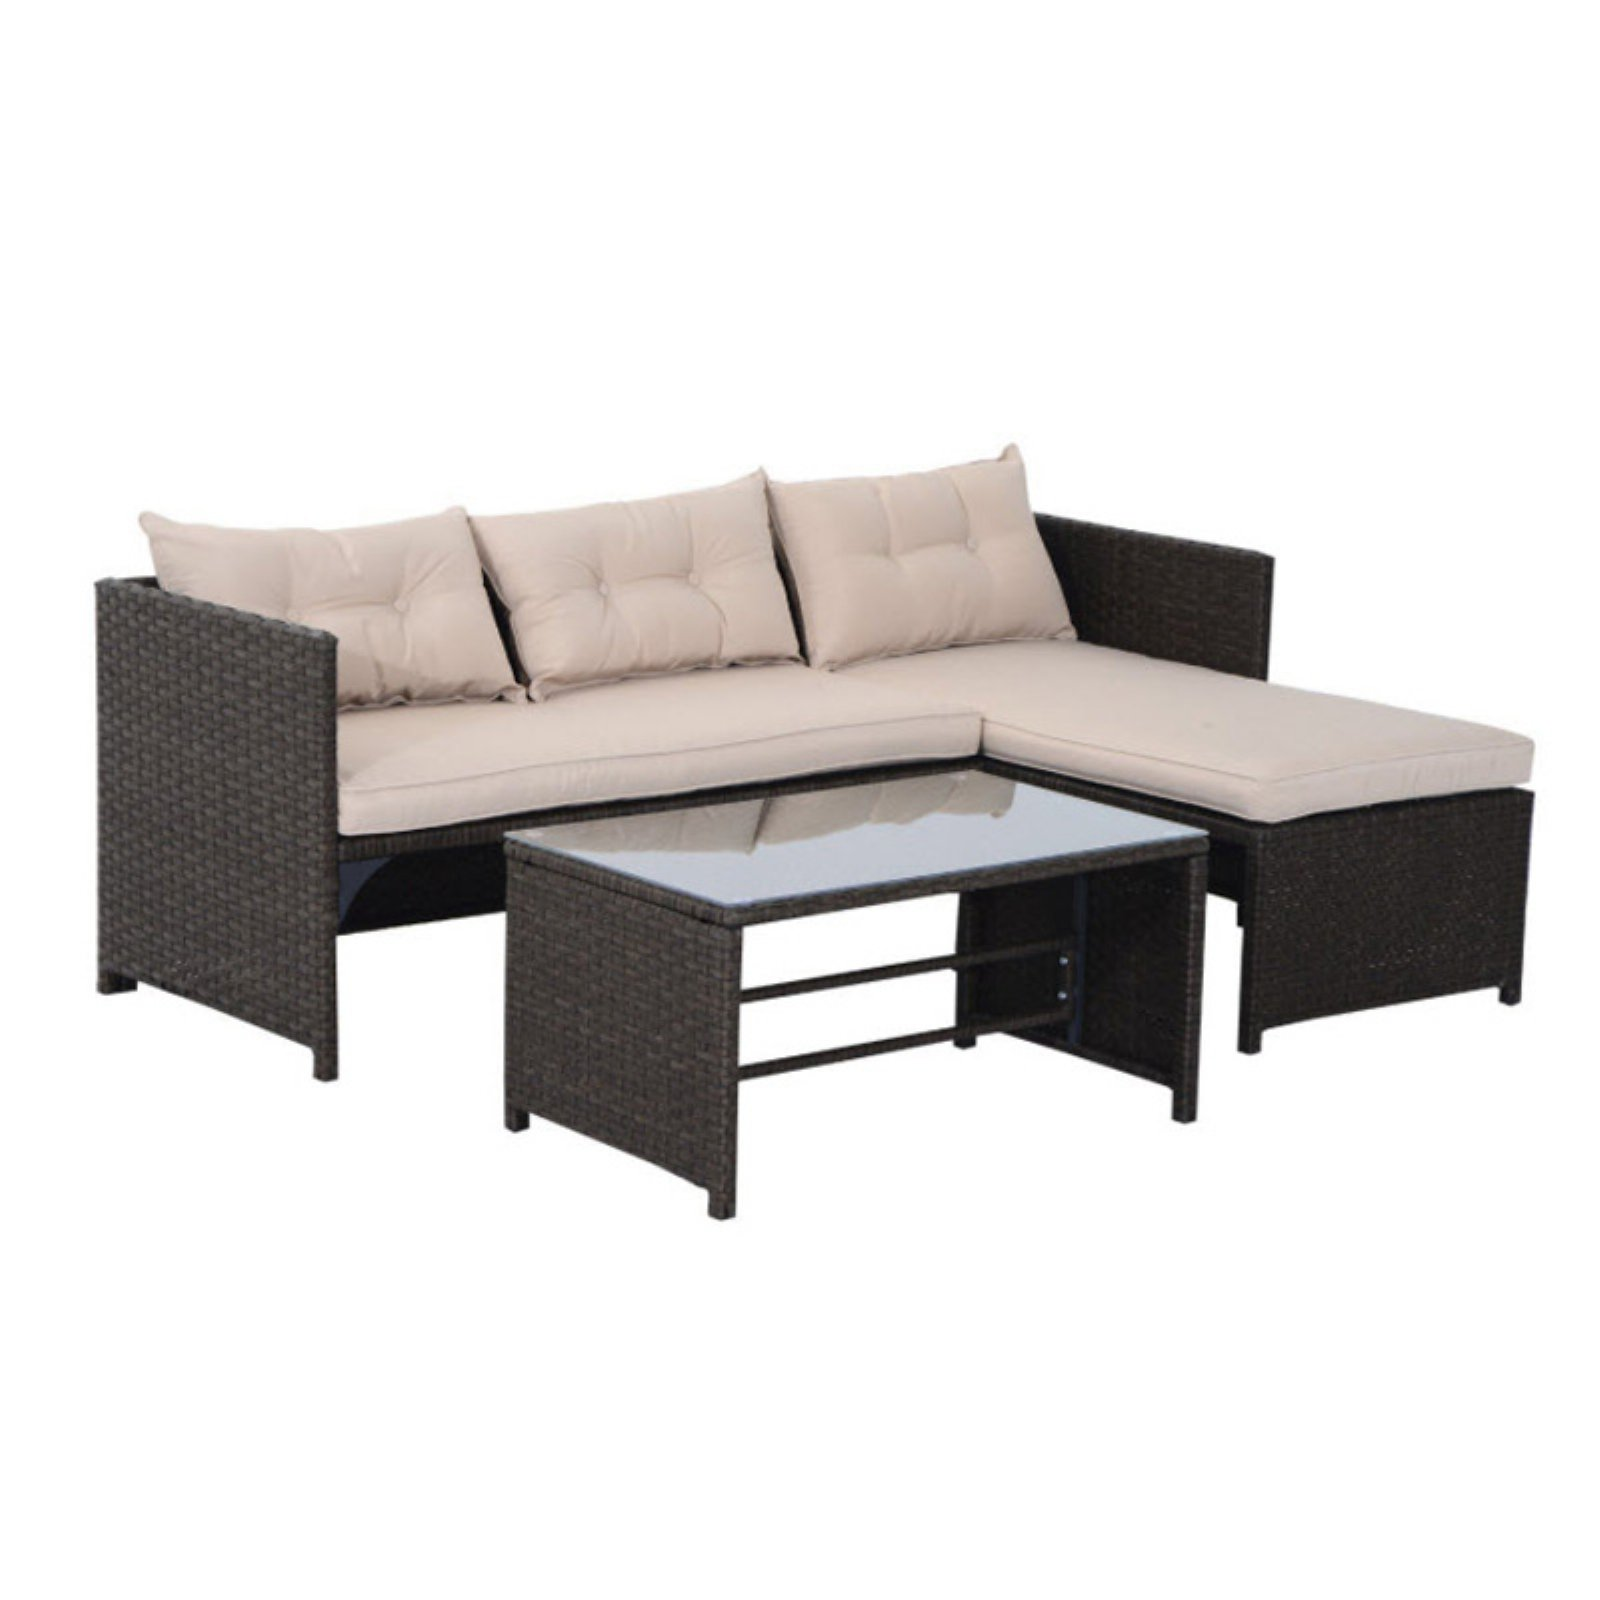 Outsunny Rattan Wicker 3 Piece Outdoor Conversation Set with